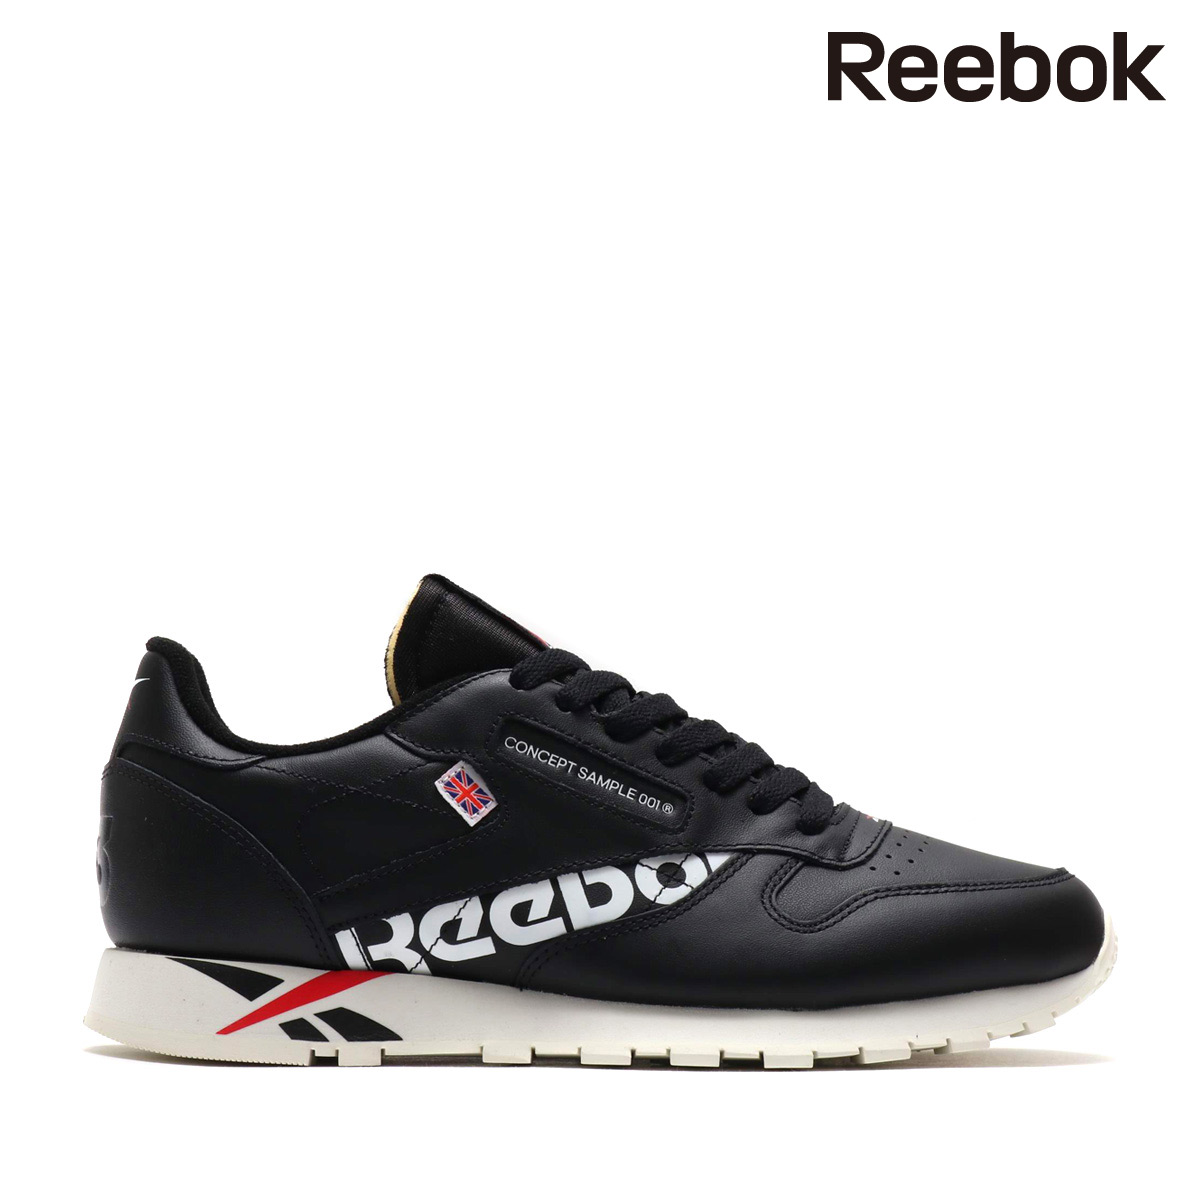 ad59250b1d Reebok CL LEATHER ATIV (BLACK/WHITE/EXCELLENT RED/CHALK) (Reebok classical  music leather ATIV)